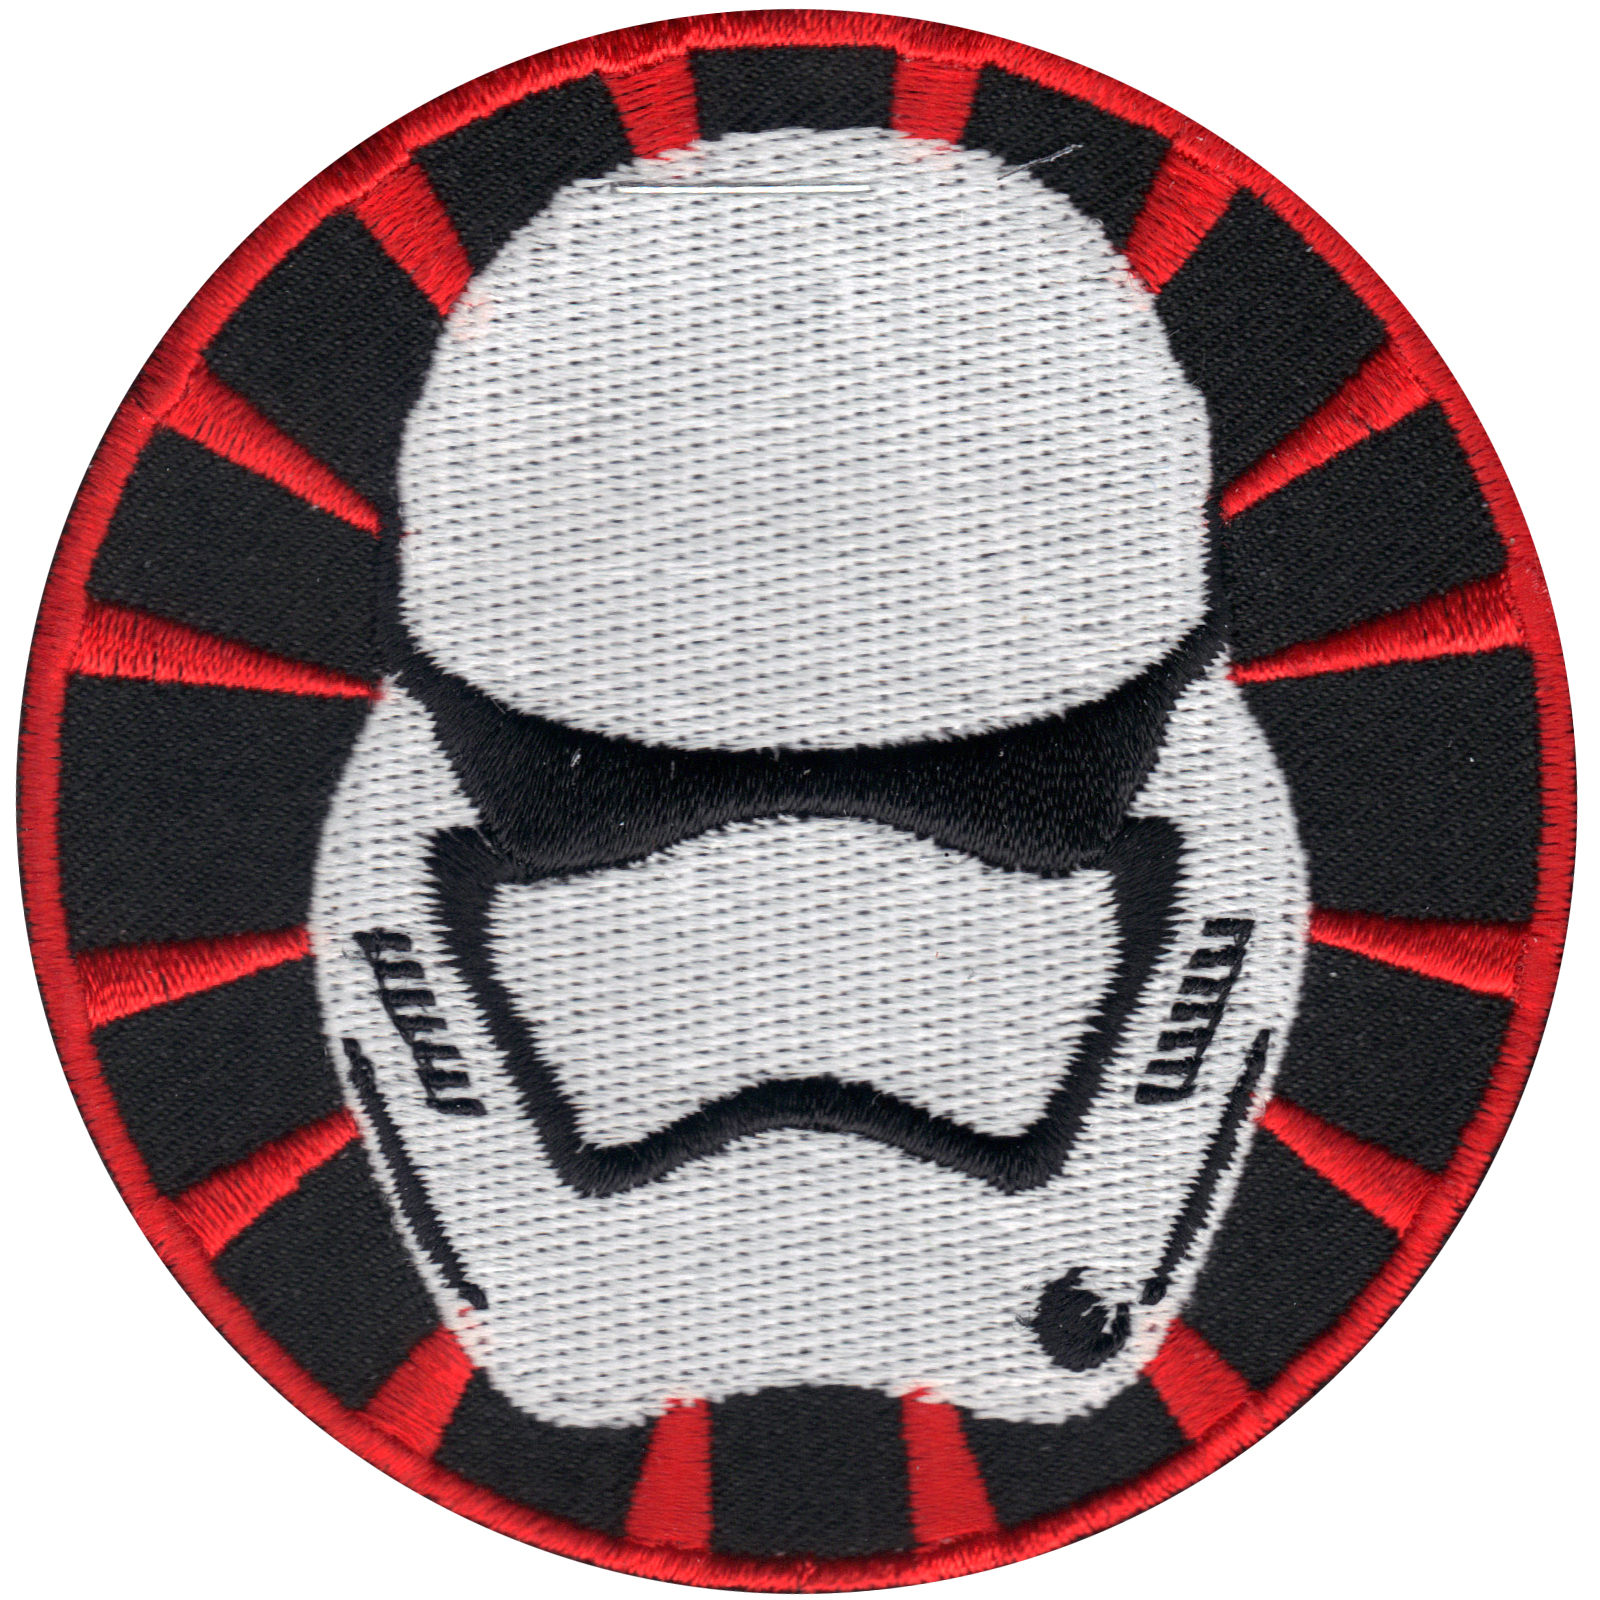 Star Wars Round Stormtrooper Helmet Iron On Patch (Orange Border)